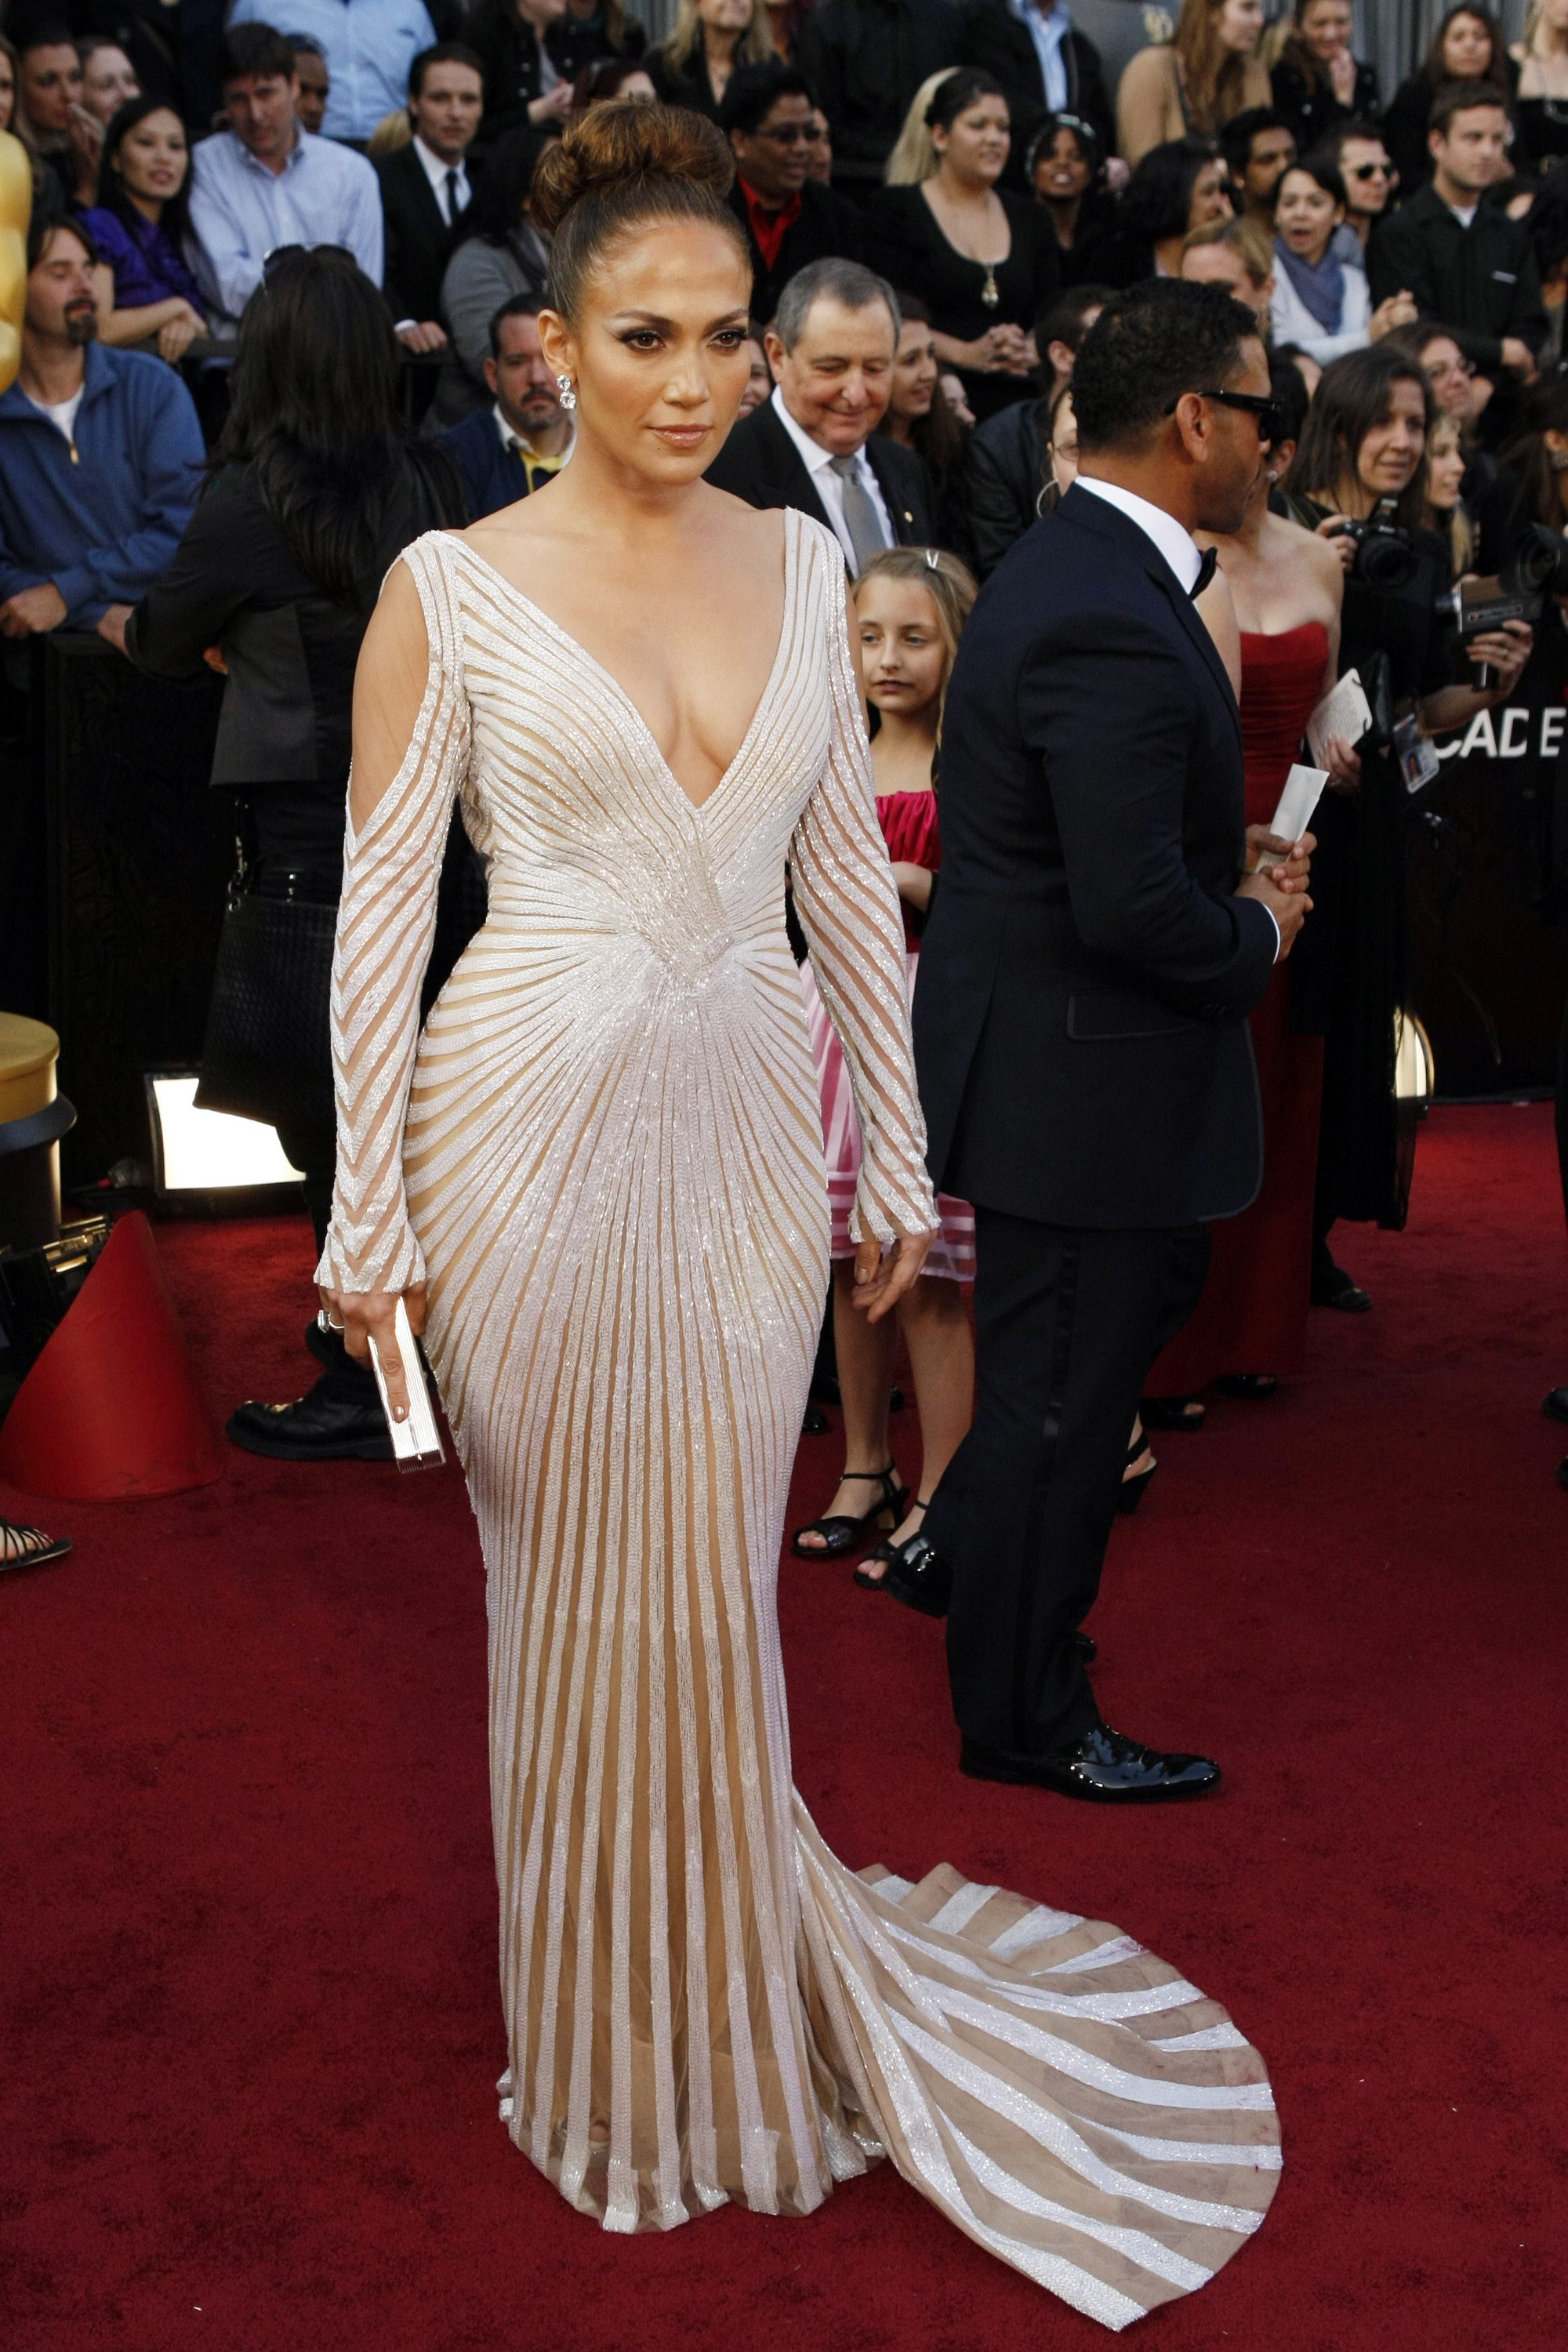 Jennifer Lopez' Stylist Denies Any Wardrobe Malfunction!